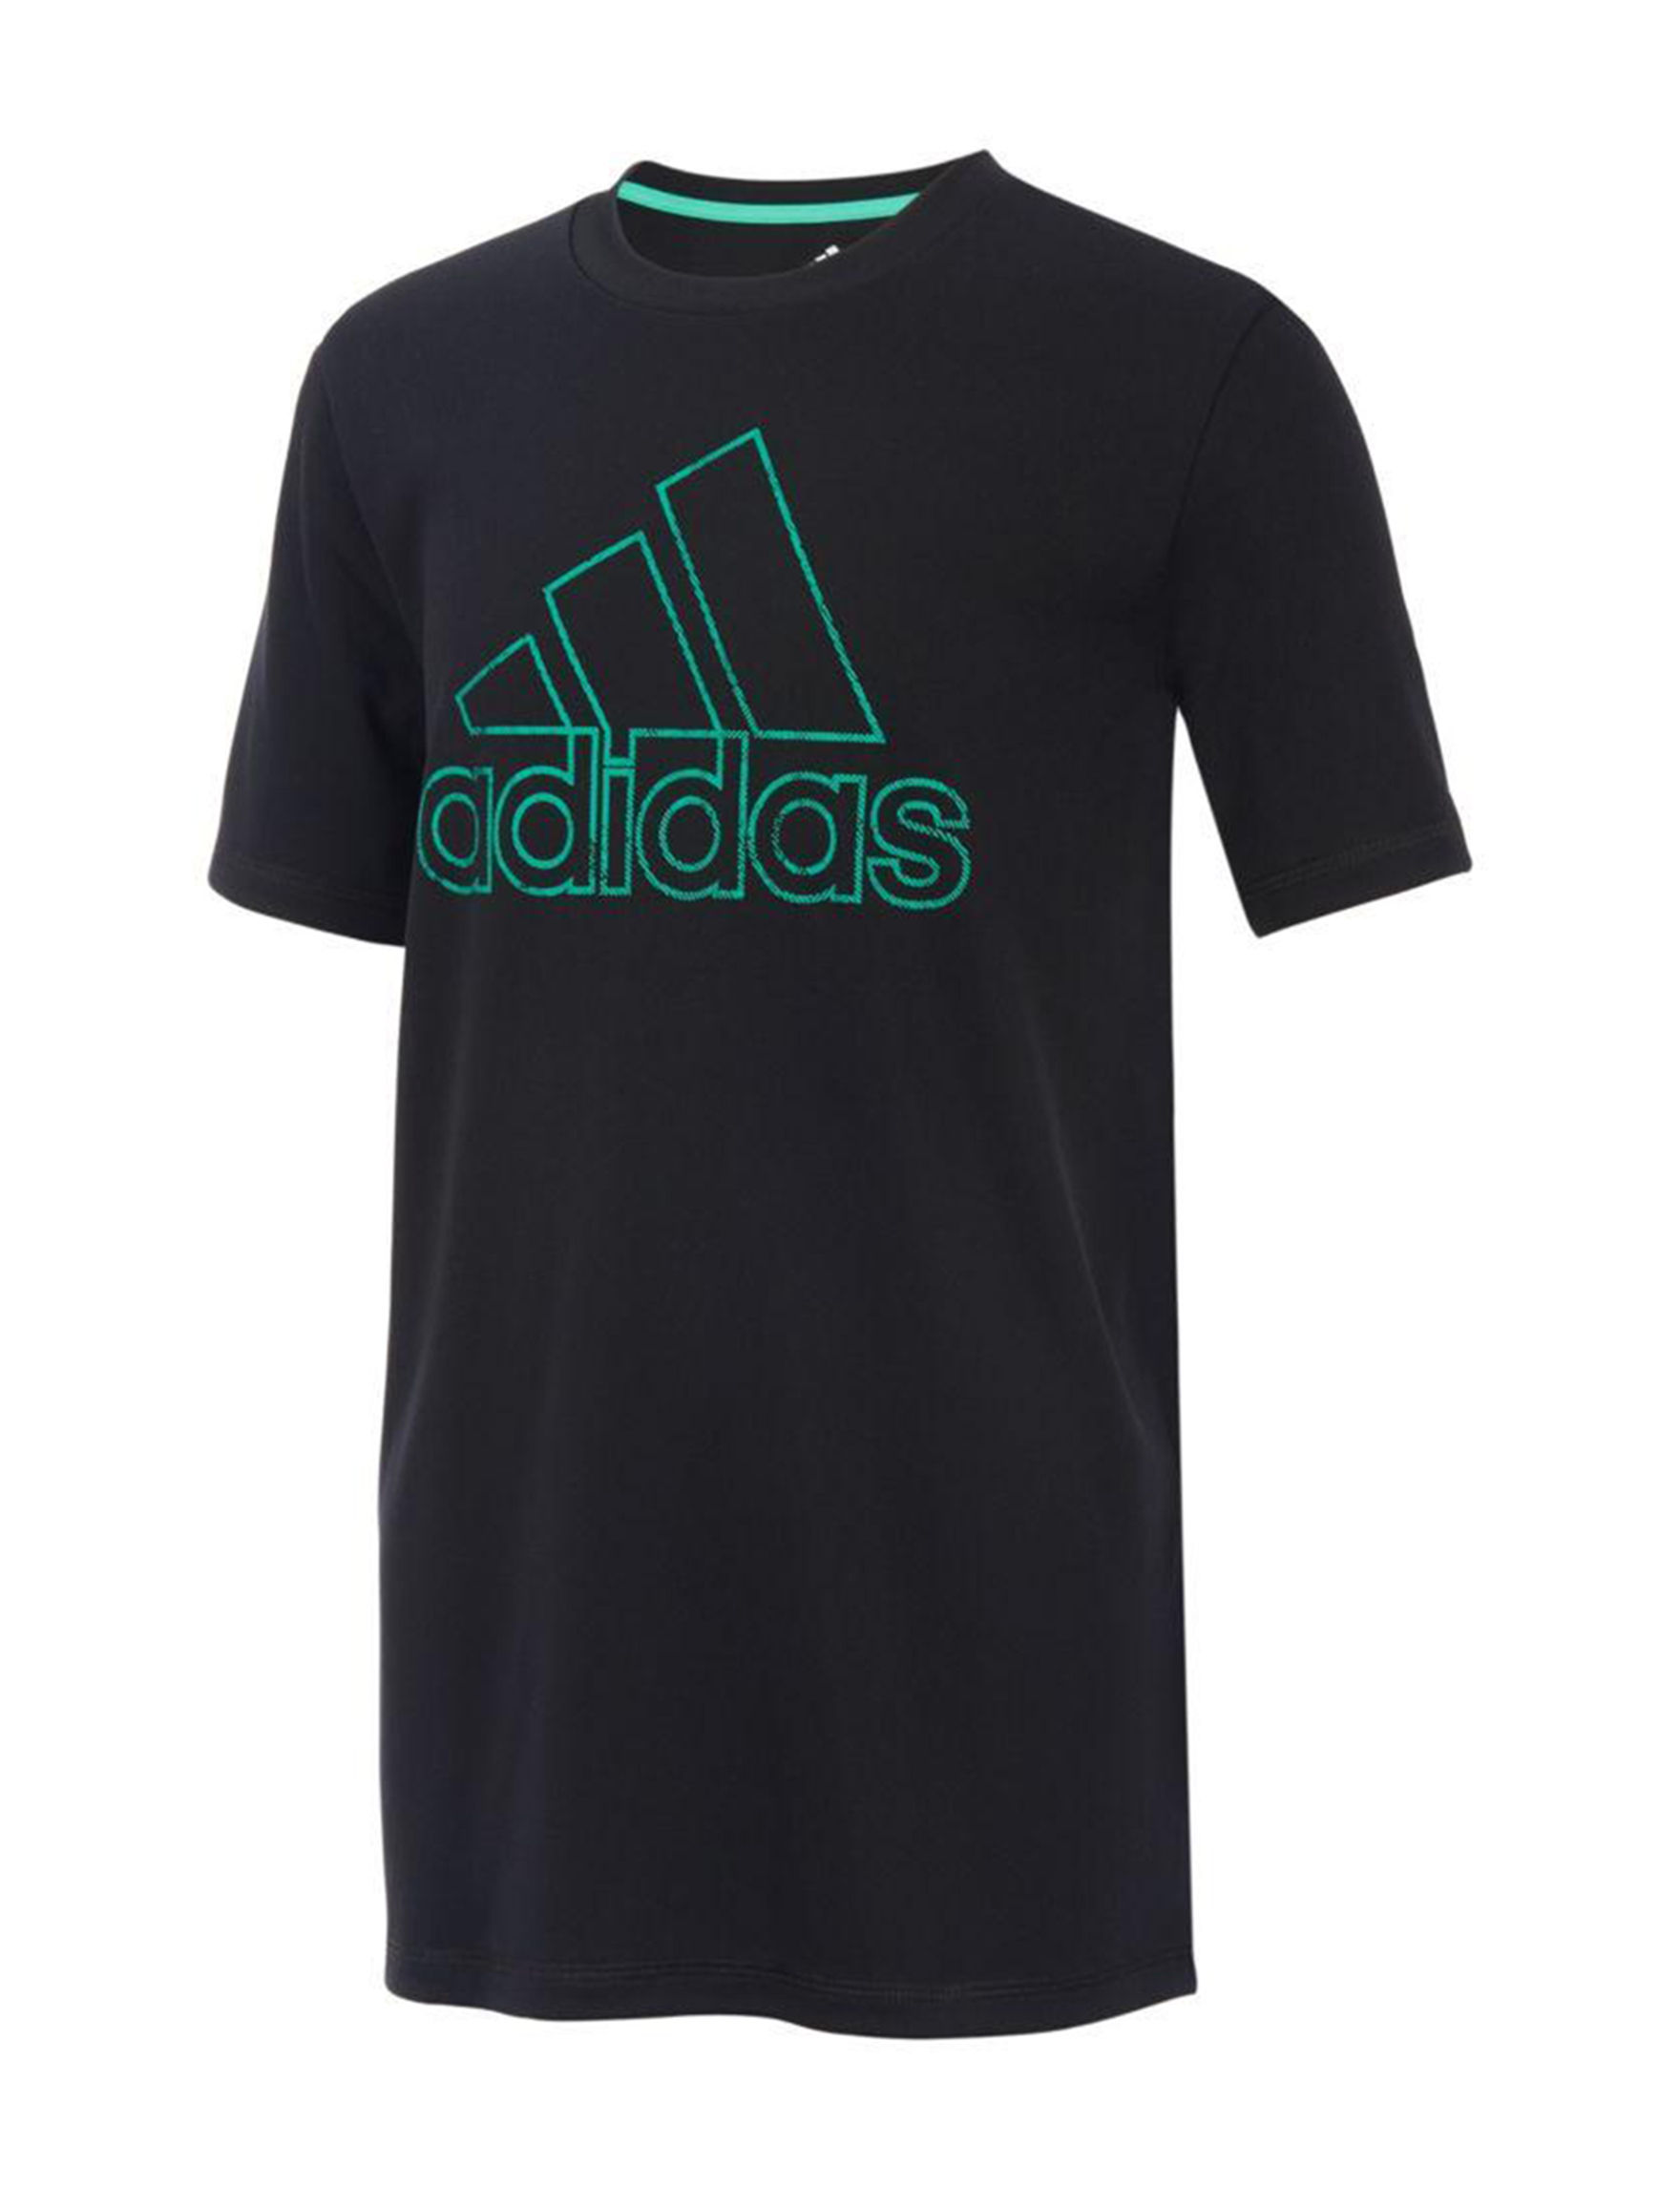 Adidas Black / Green Tees & Tanks